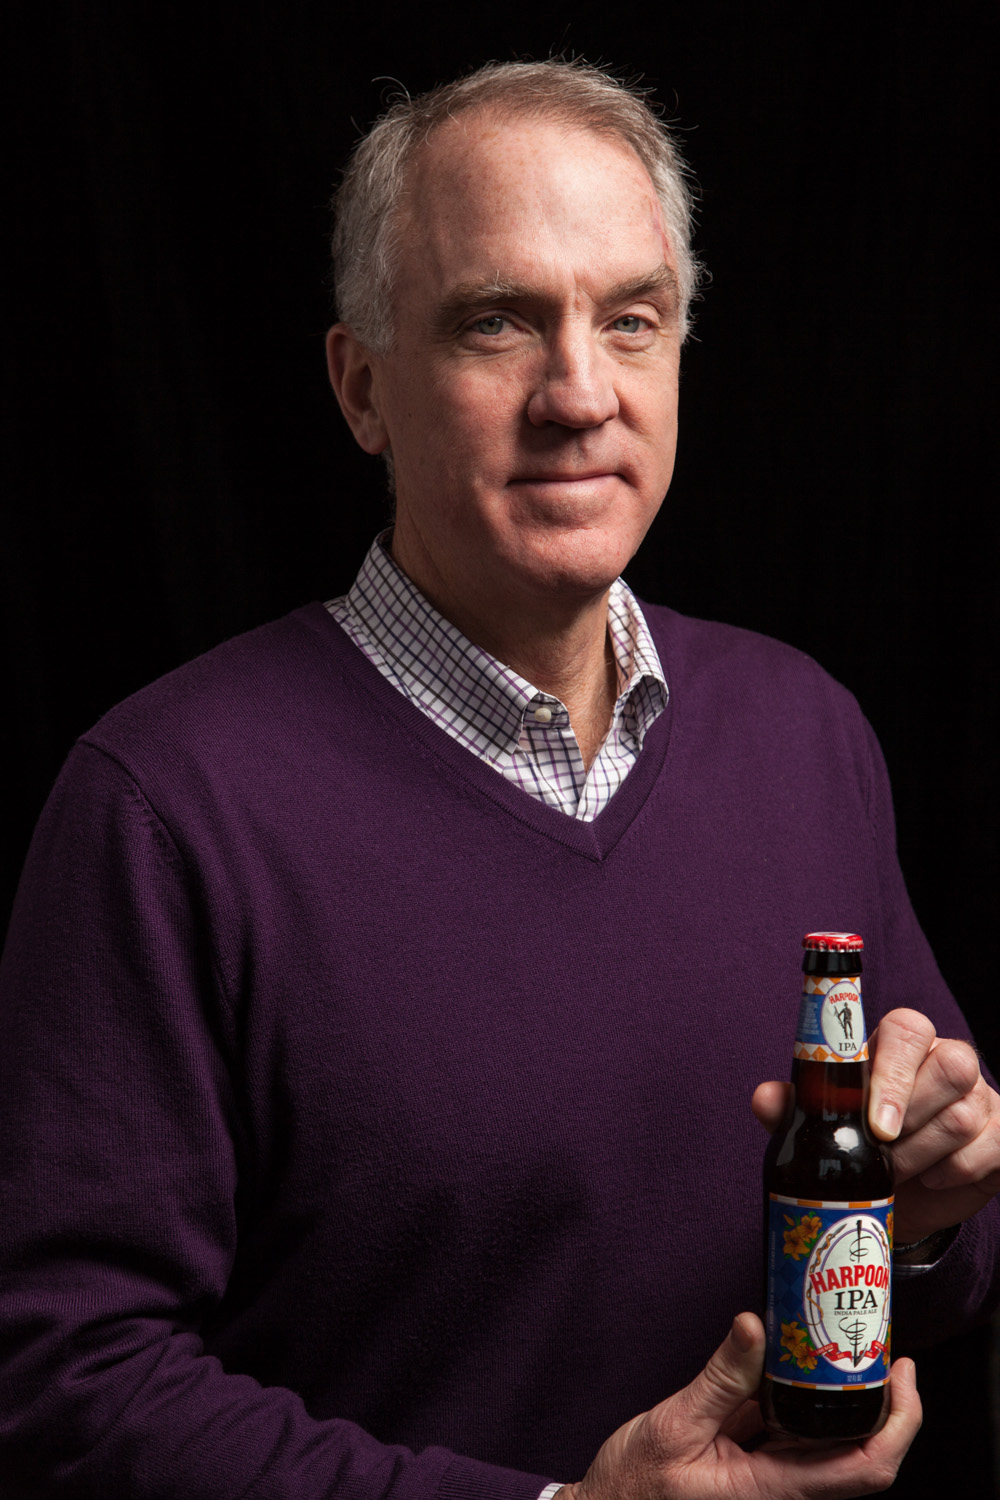 Dan Kenary, Founding Partner of Harpoon Brewery, Boston, MA Established in 1987